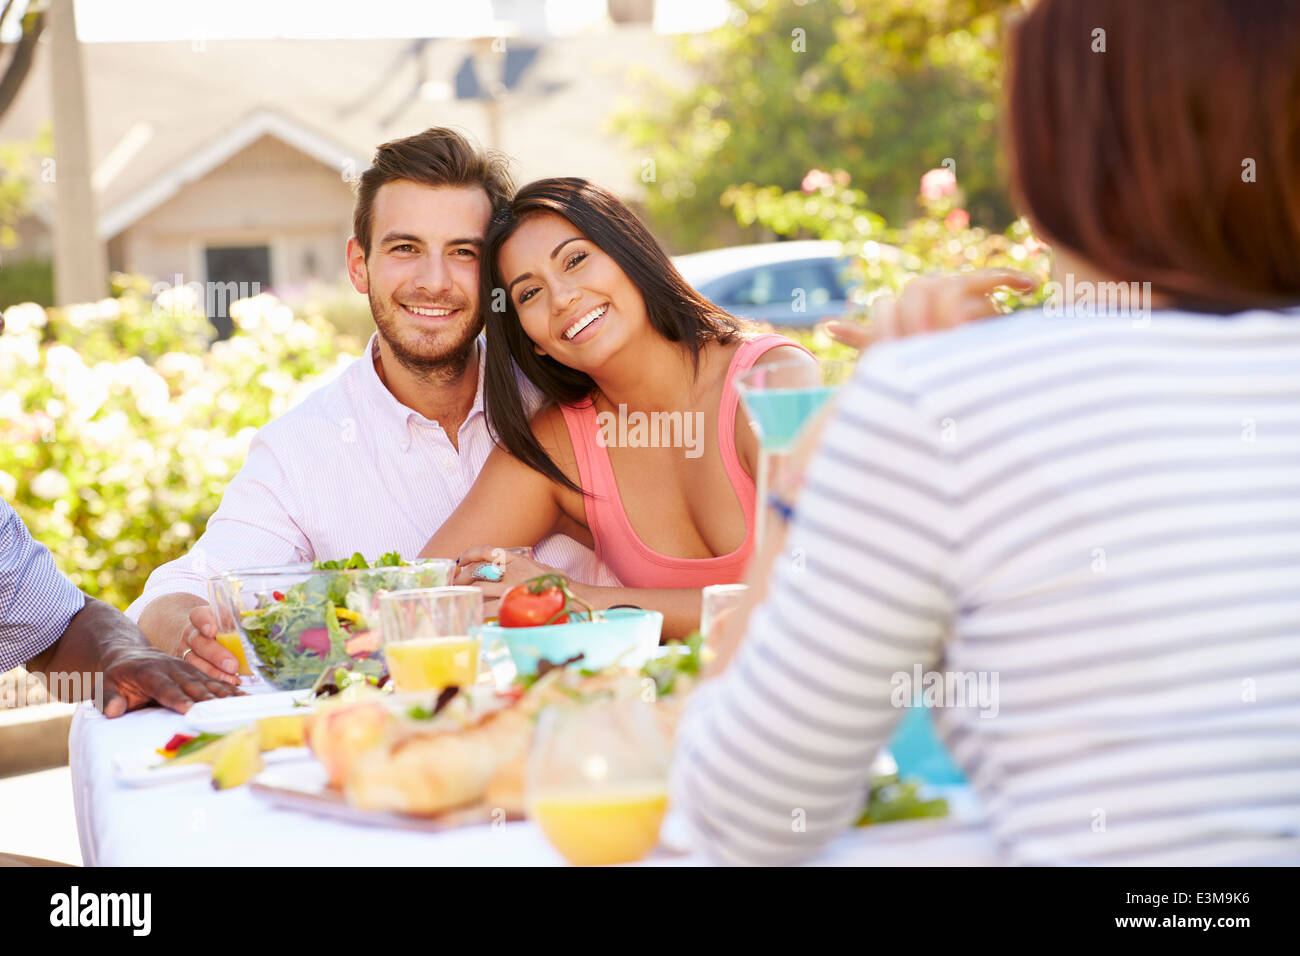 Group Of Friends Enjoying Meal At Outdoor Party In Back Yard - Stock Image